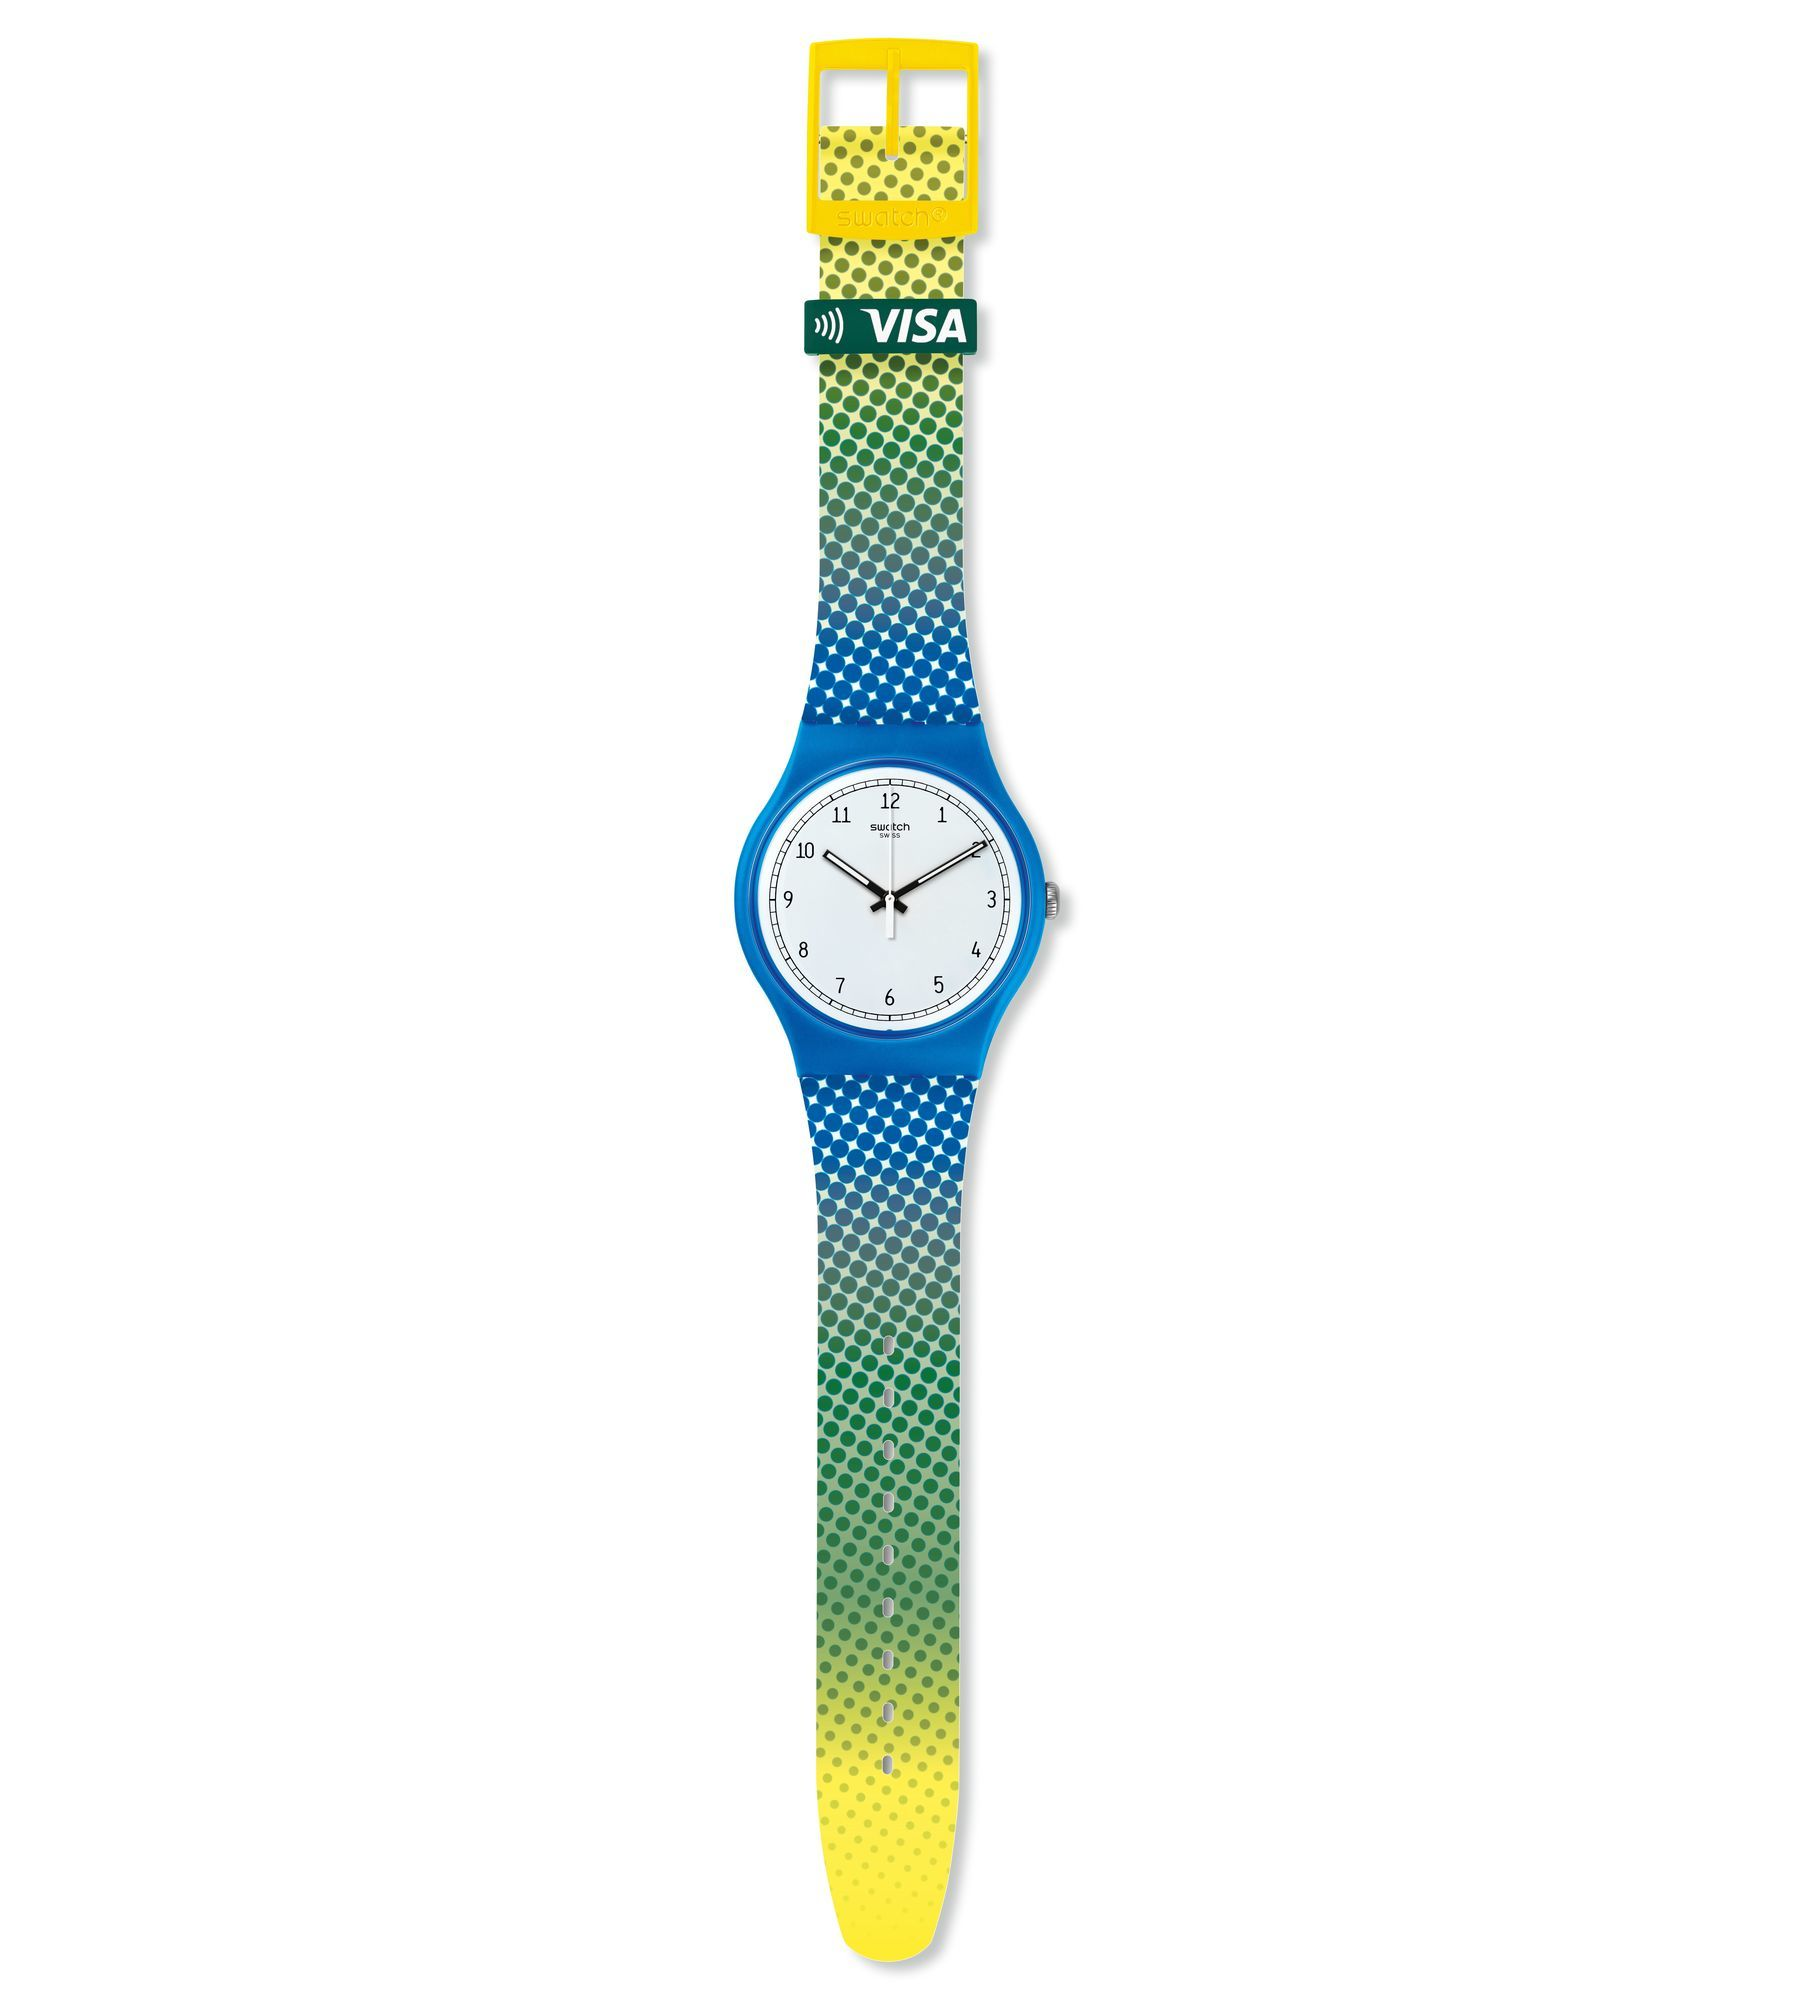 SWATCH BELLAMY SAMBA